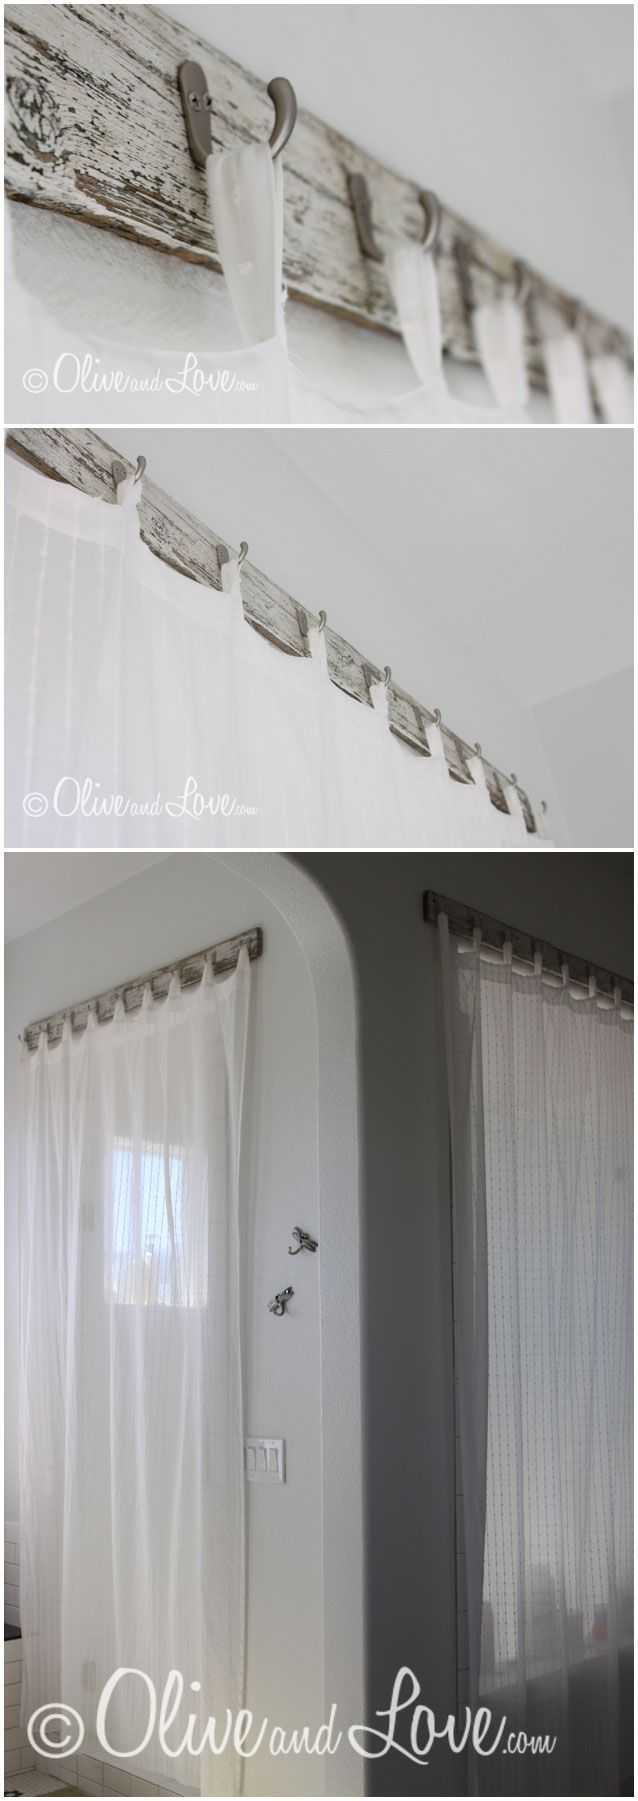 Love this curtain rod idea